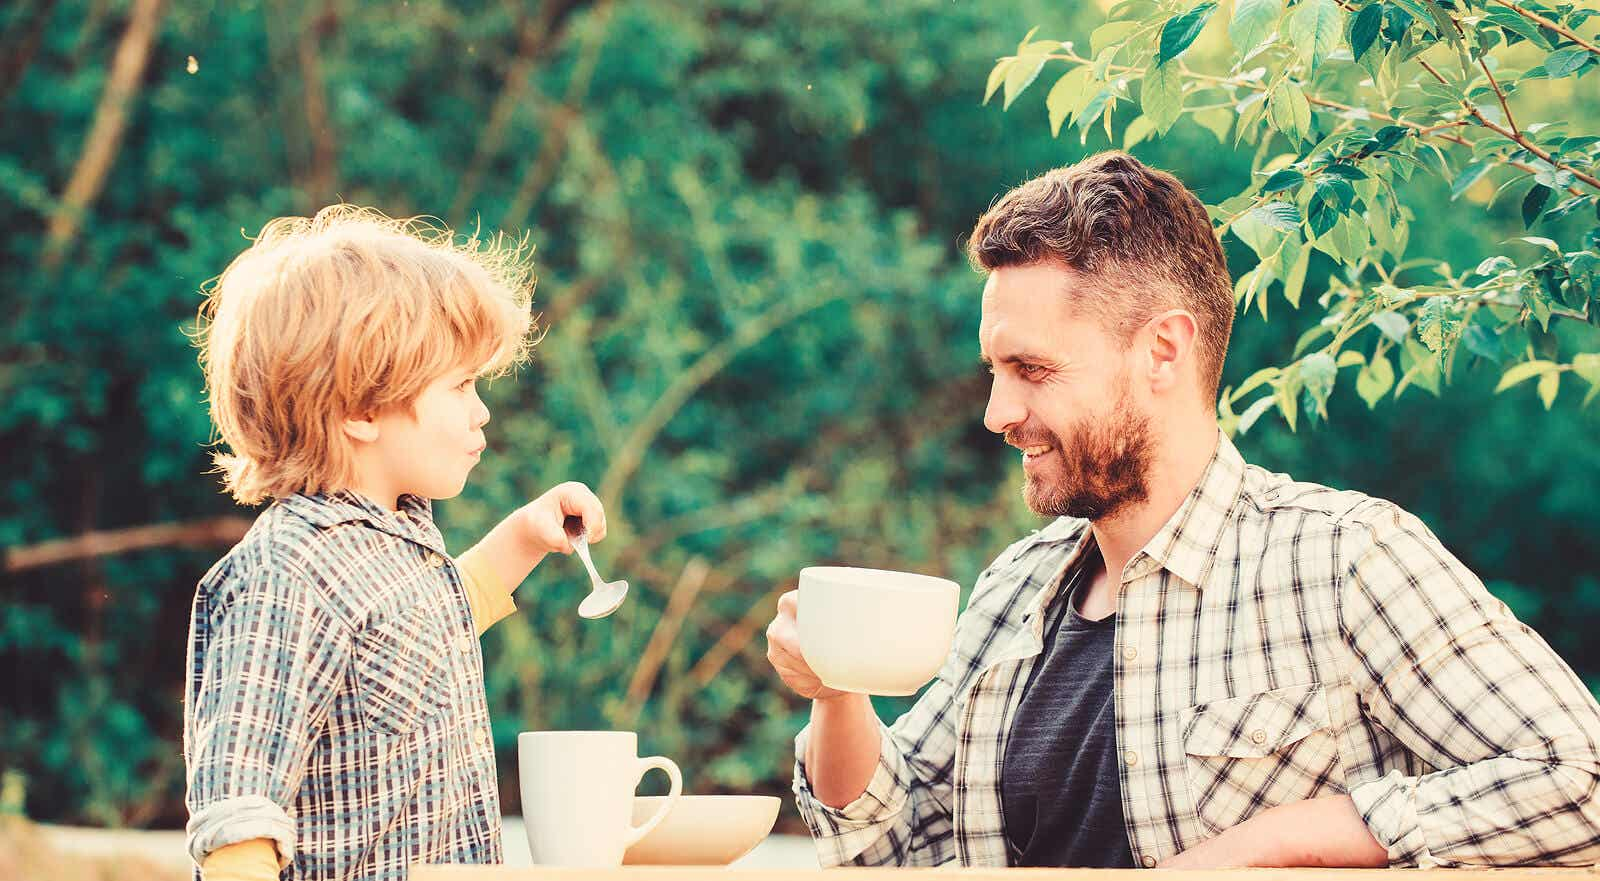 A father drinking having coffee with his son.